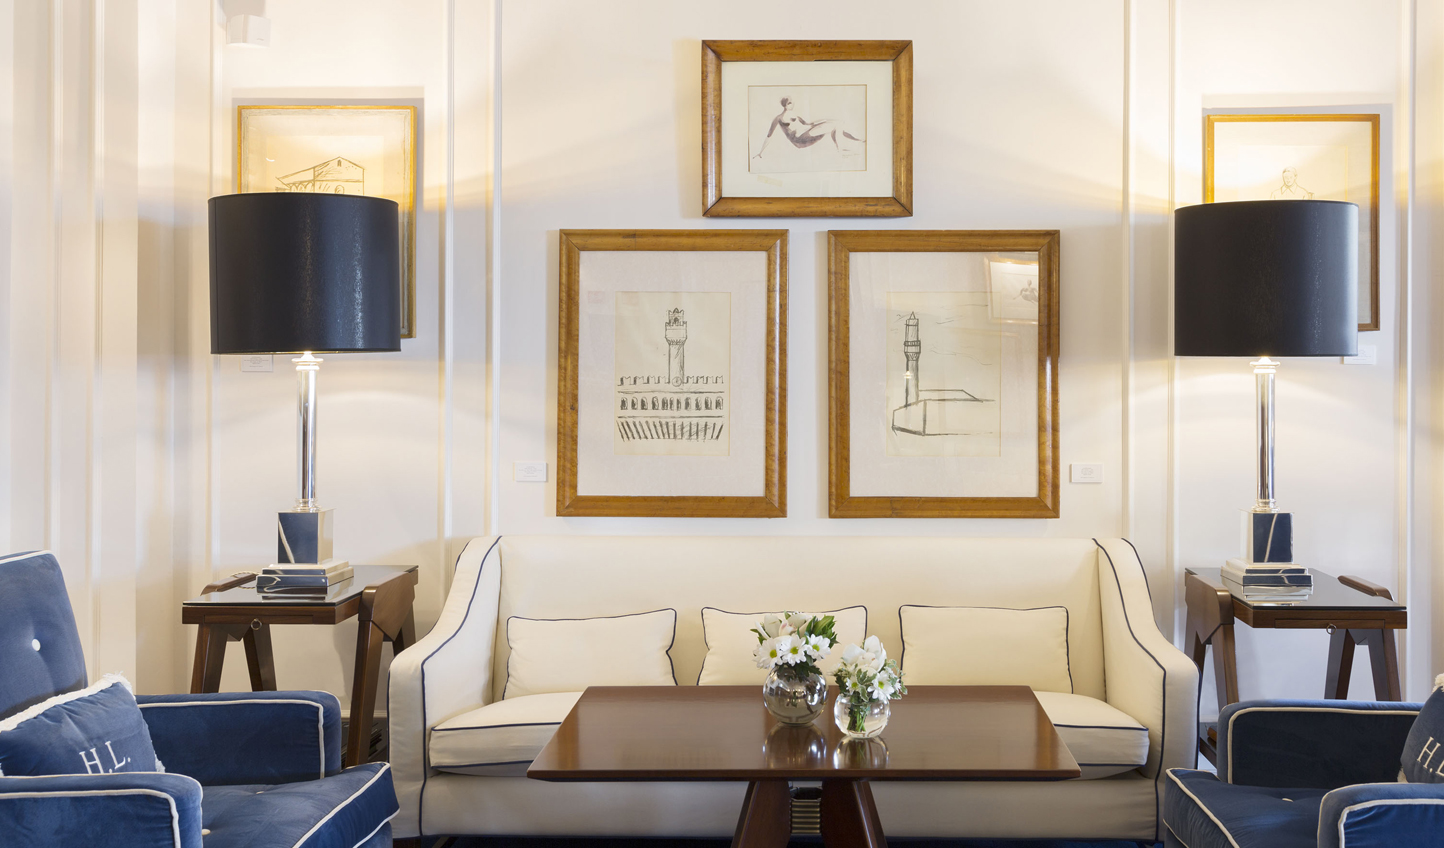 Admire the hotel's impressive, 450 strong, art collection